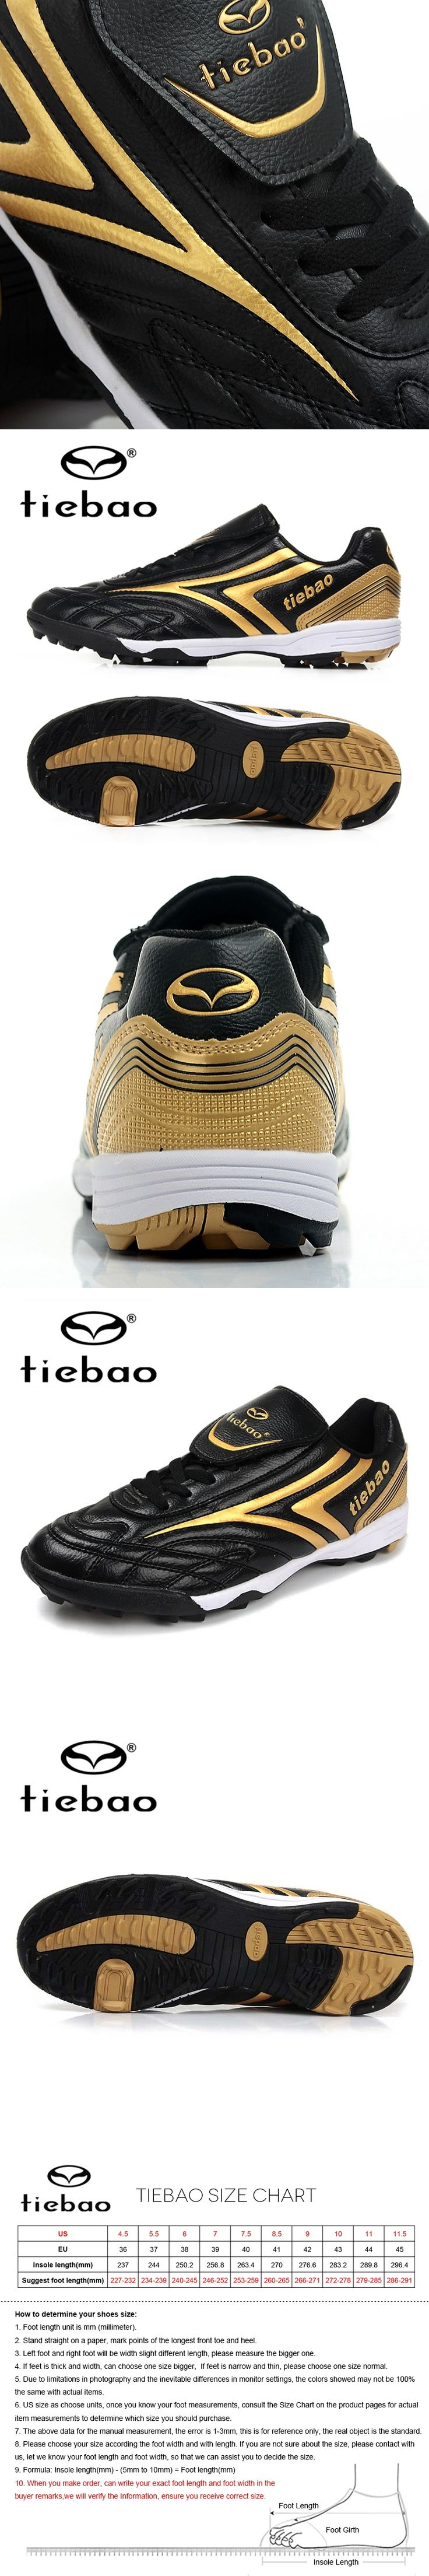 TIEBAO Professional TF Turf Soles Soccer Shoes Botas De Futbol Soccer Cleats Men Football Boots Athletic Training Sneakers